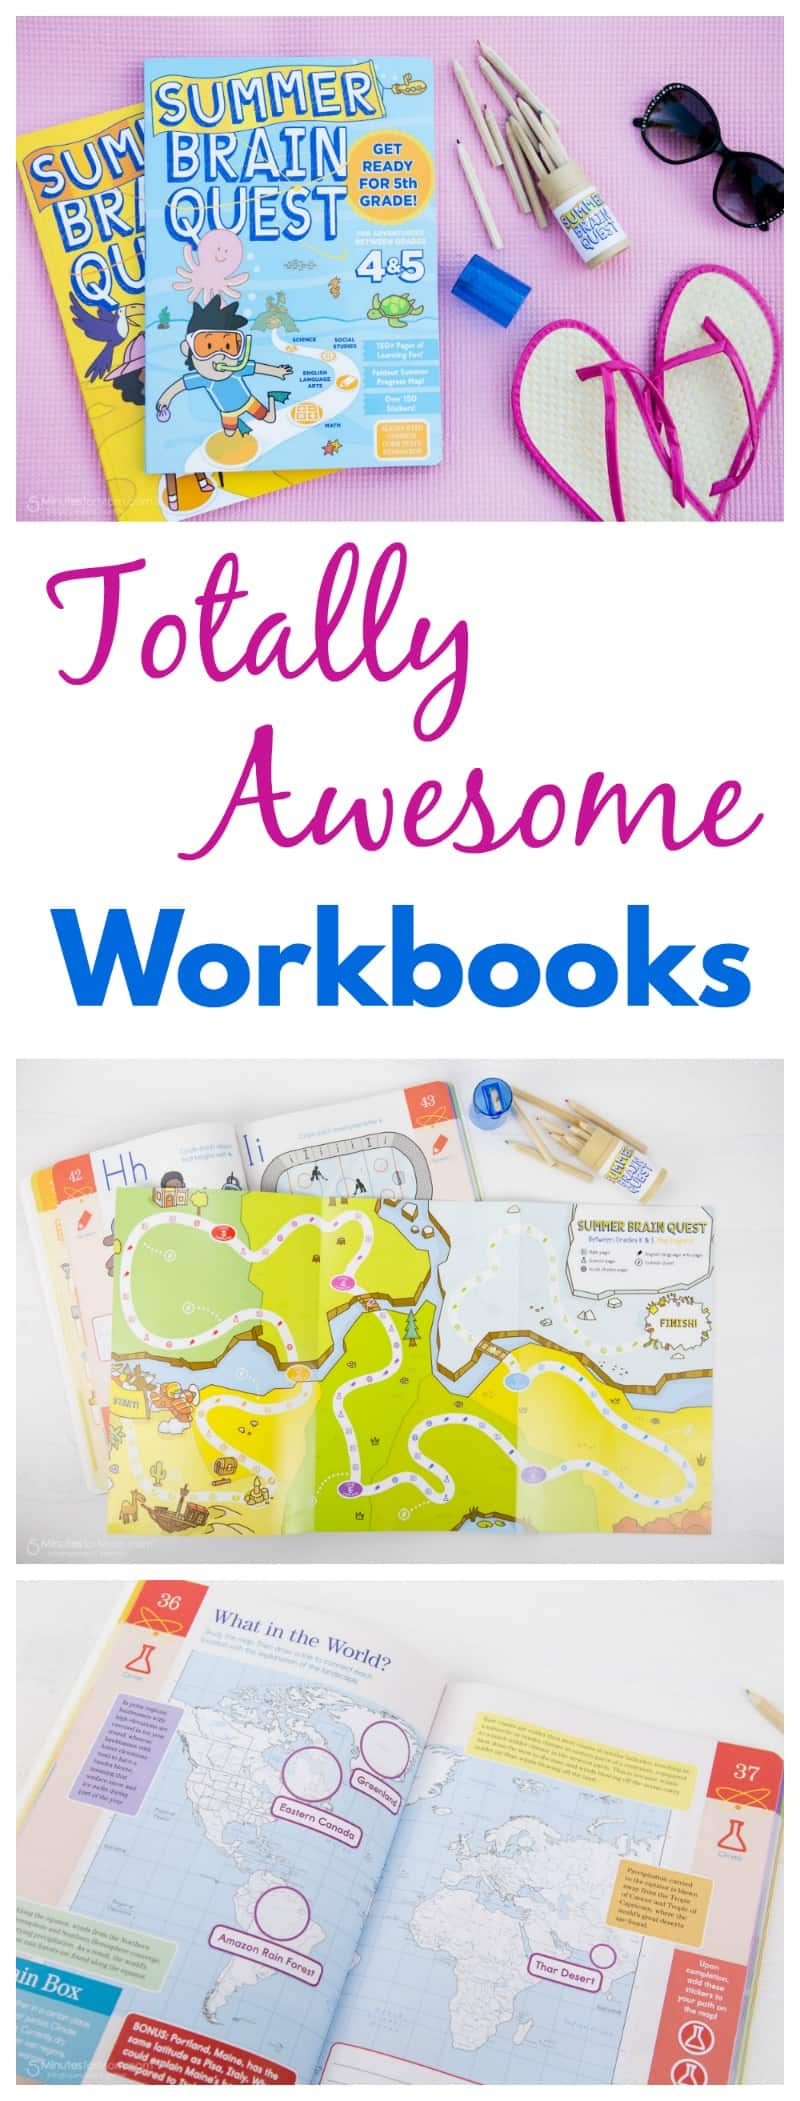 Totally Awesome Workbooks